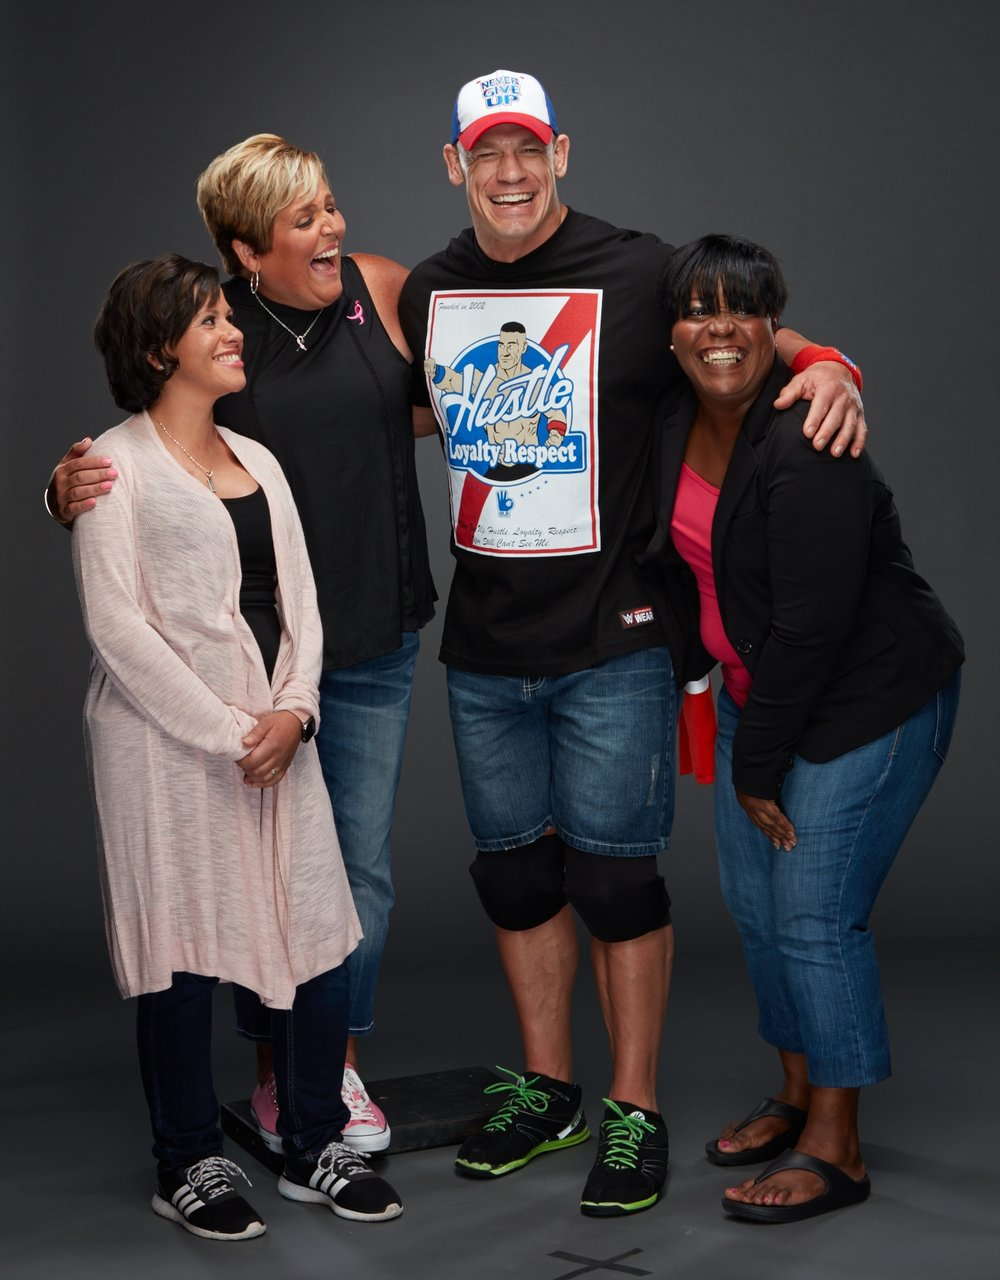 WWE Superstar John Cena meets with breast cancer survivors during our #MoreThanPink campaign.